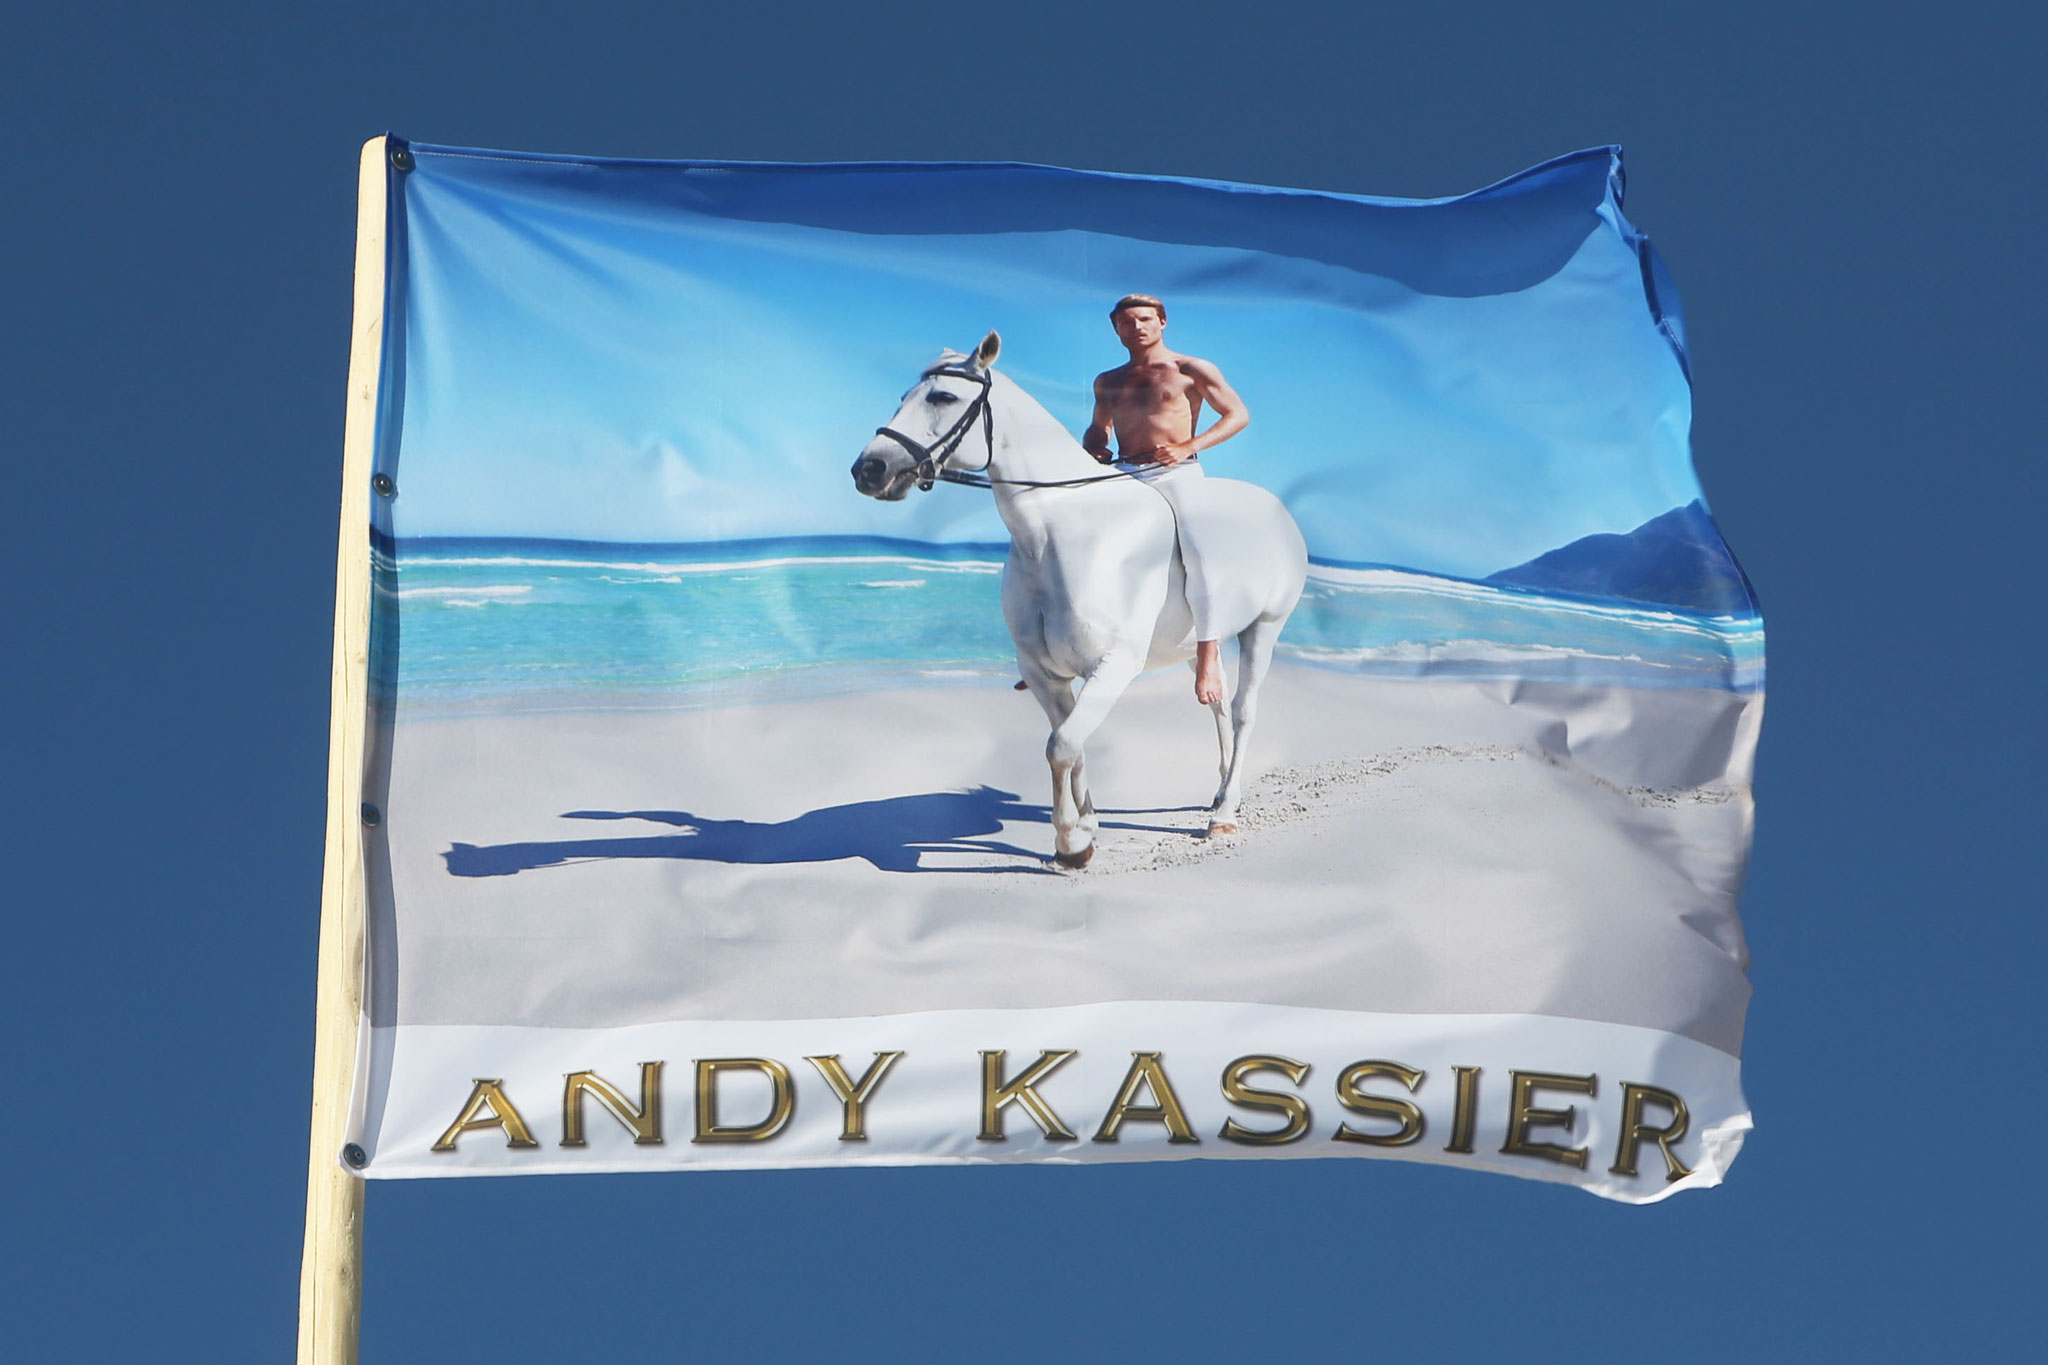 Andy Kassier 2018